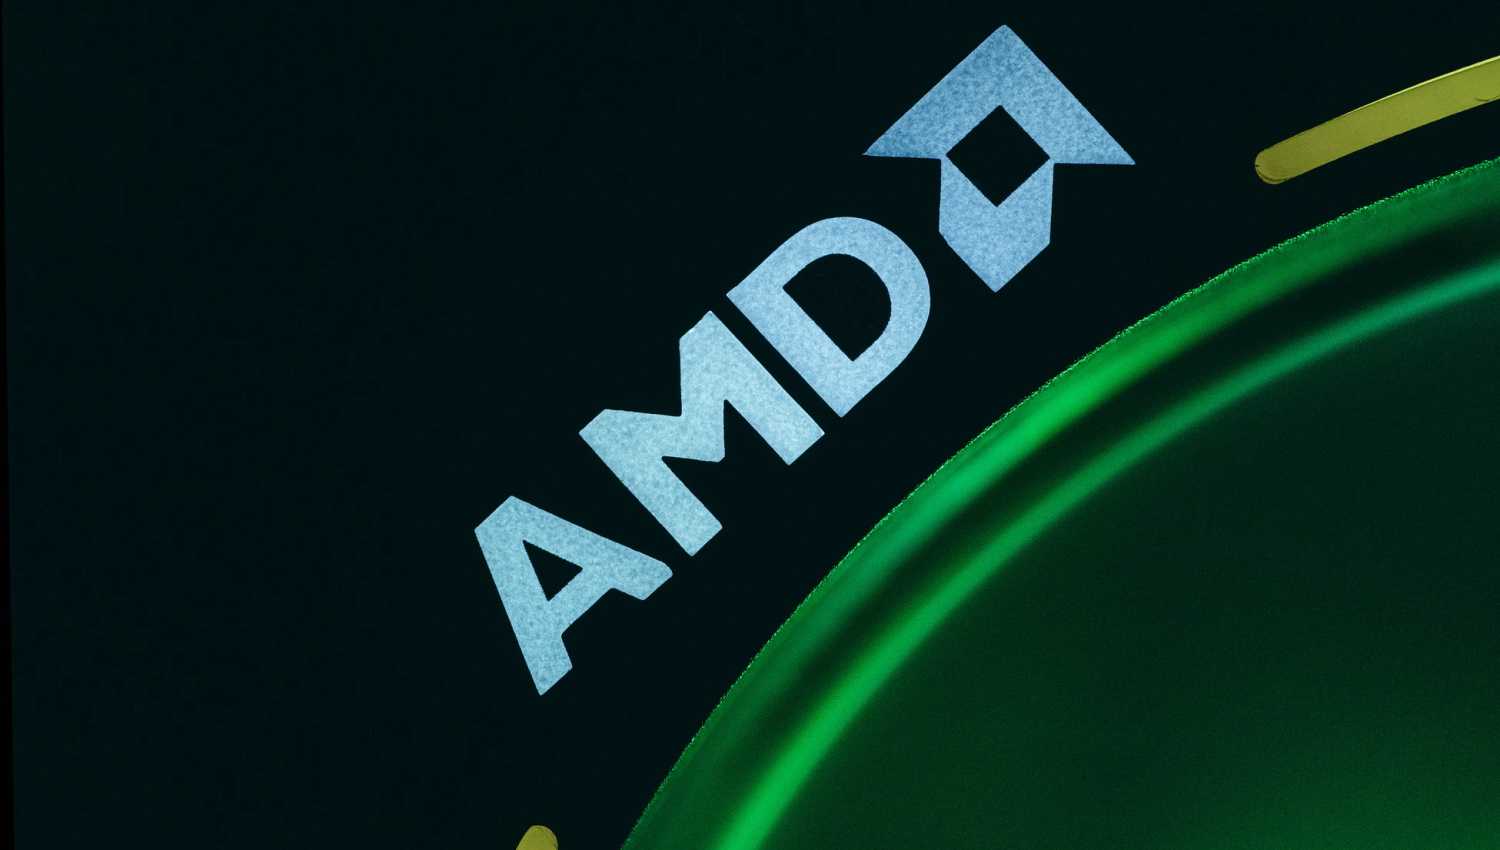 AMD Zen 3 CPUs vulnerable to Spectre-like attacks via PSF feature